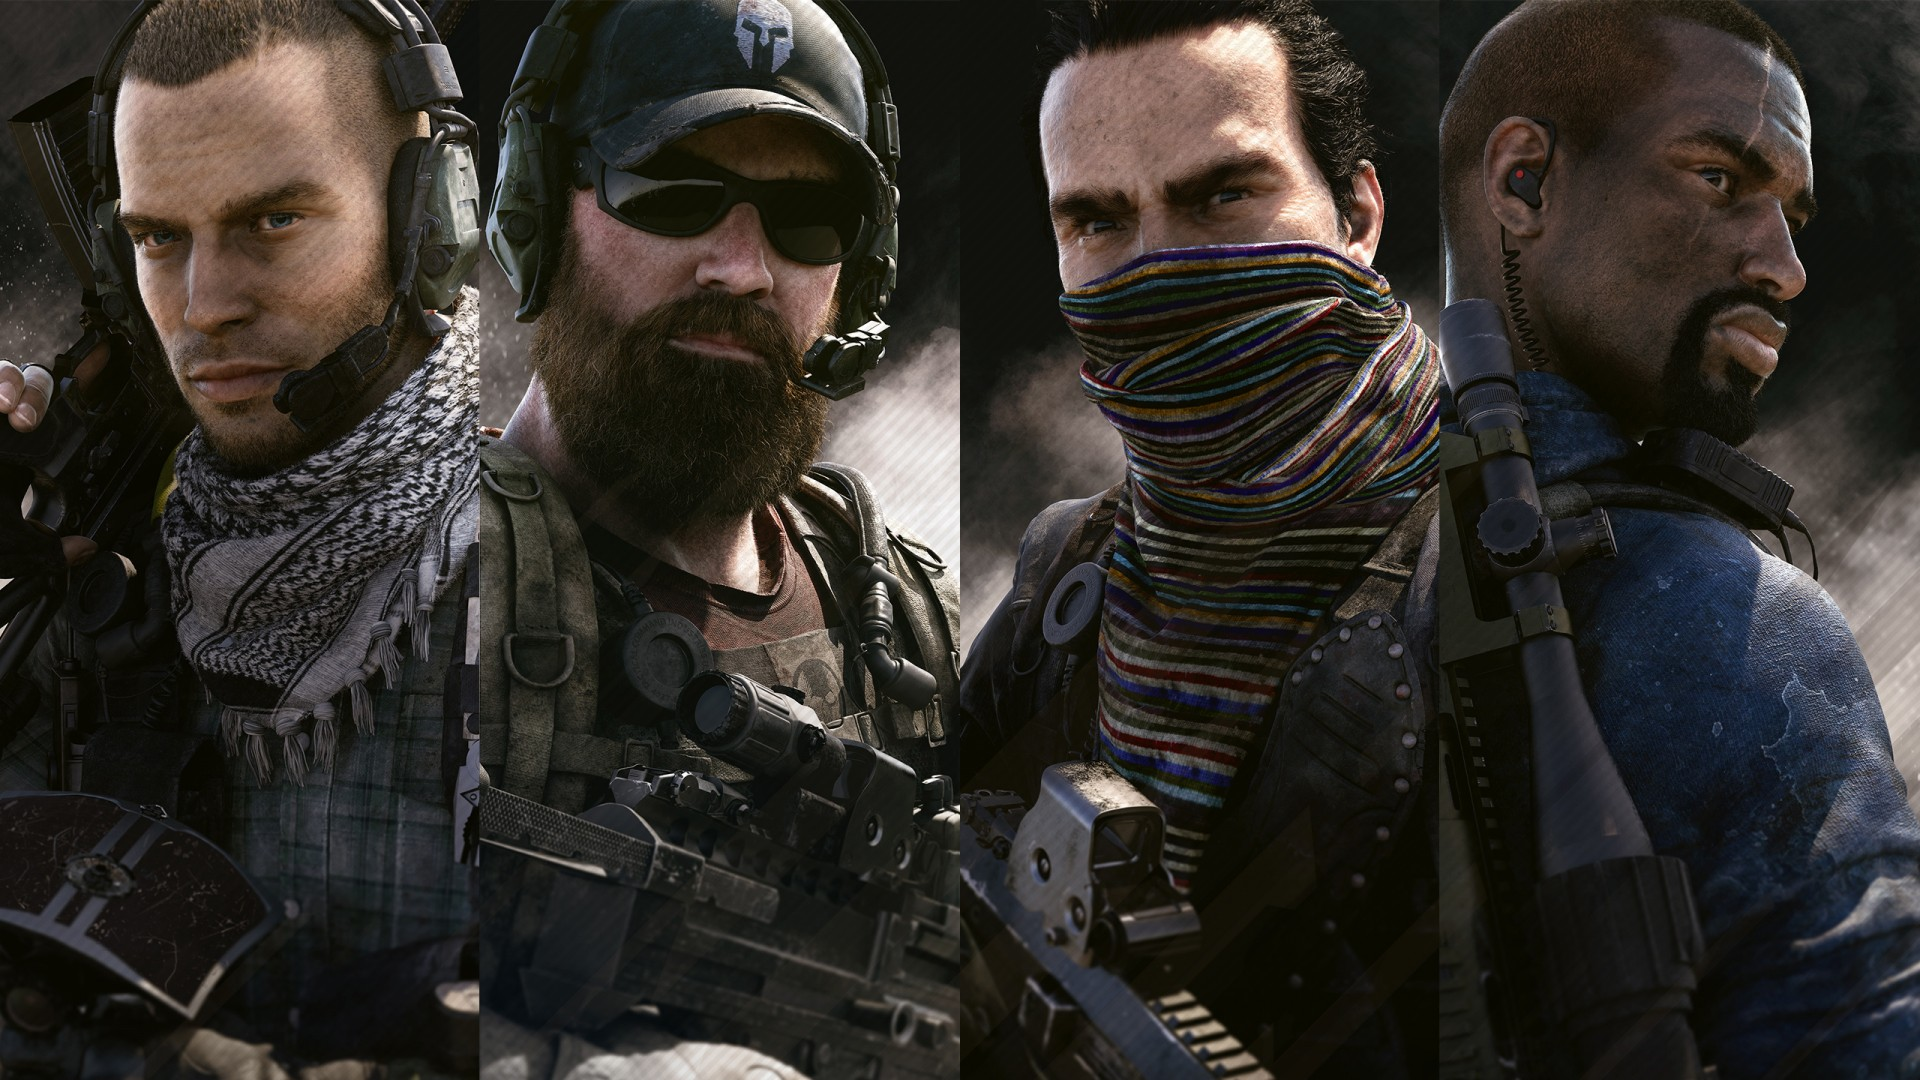 Special Forces Iphone Wallpaper Tom Clancys Ghost Recon Wildlands Ghosts Wallpapers Hd